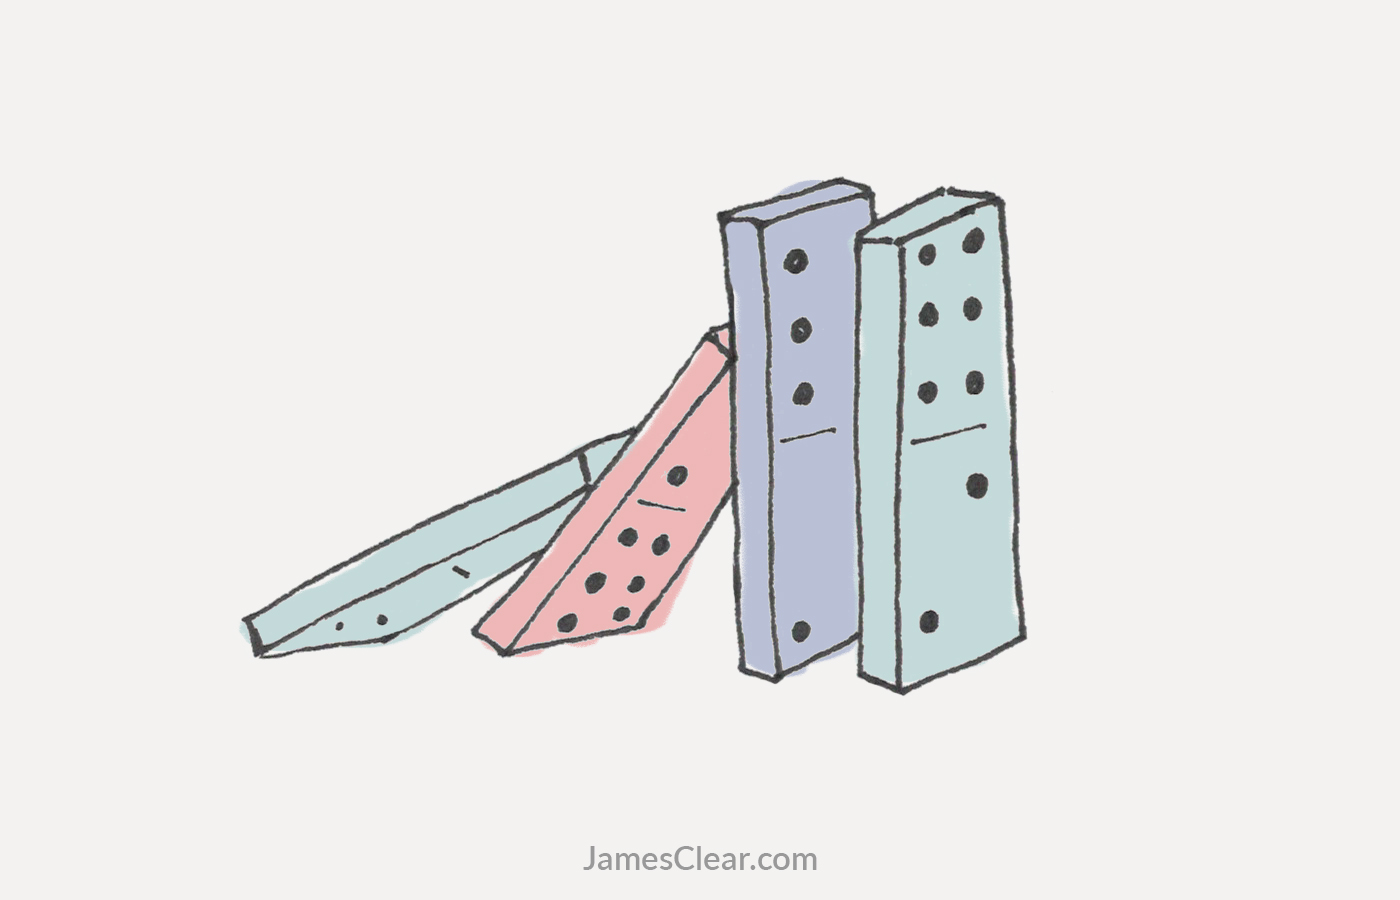 The Domino EffectThe Domino Effect